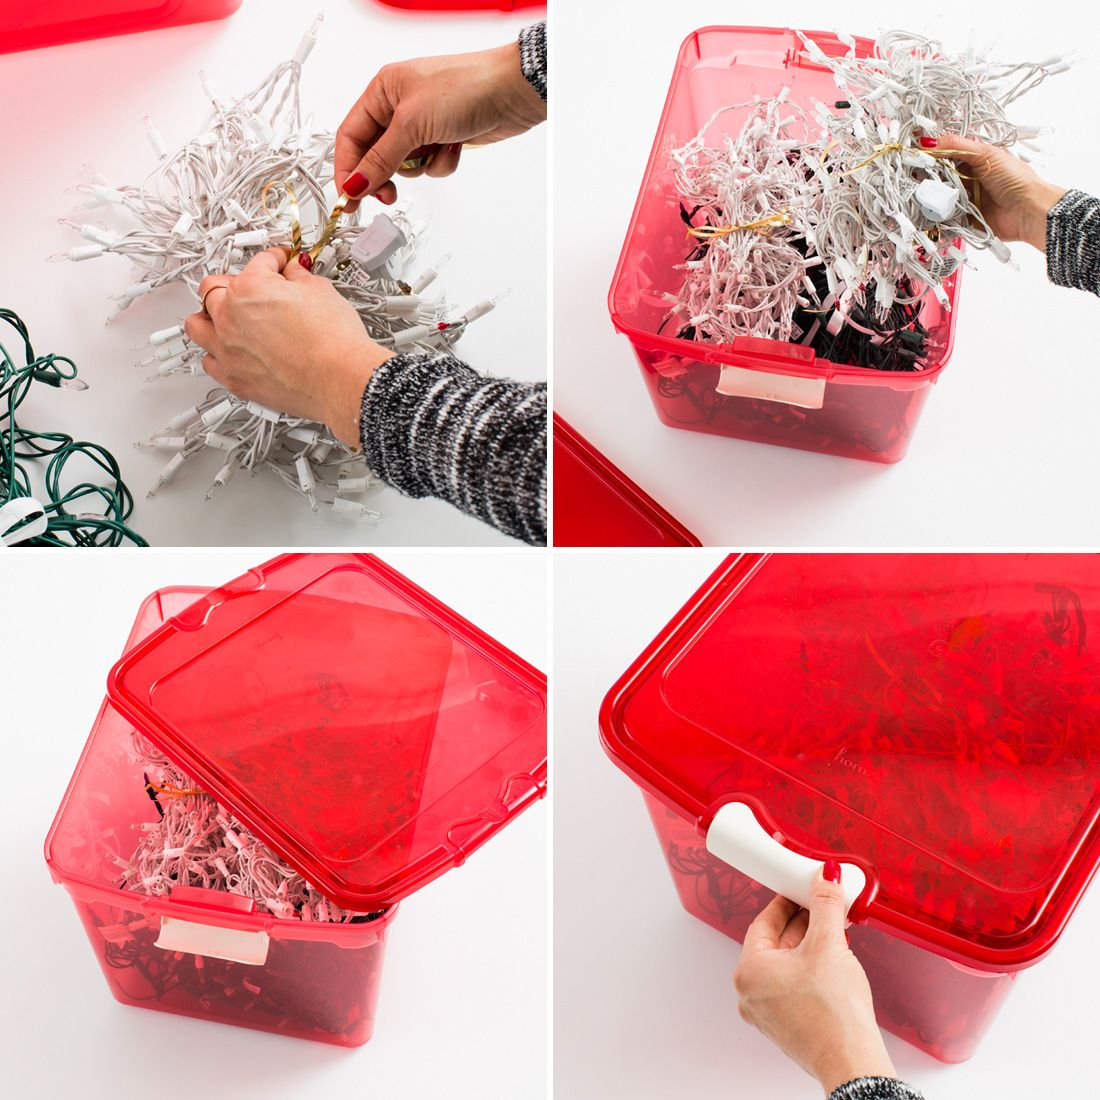 Take Time To Organize Your Holiday Decorations As You Pack